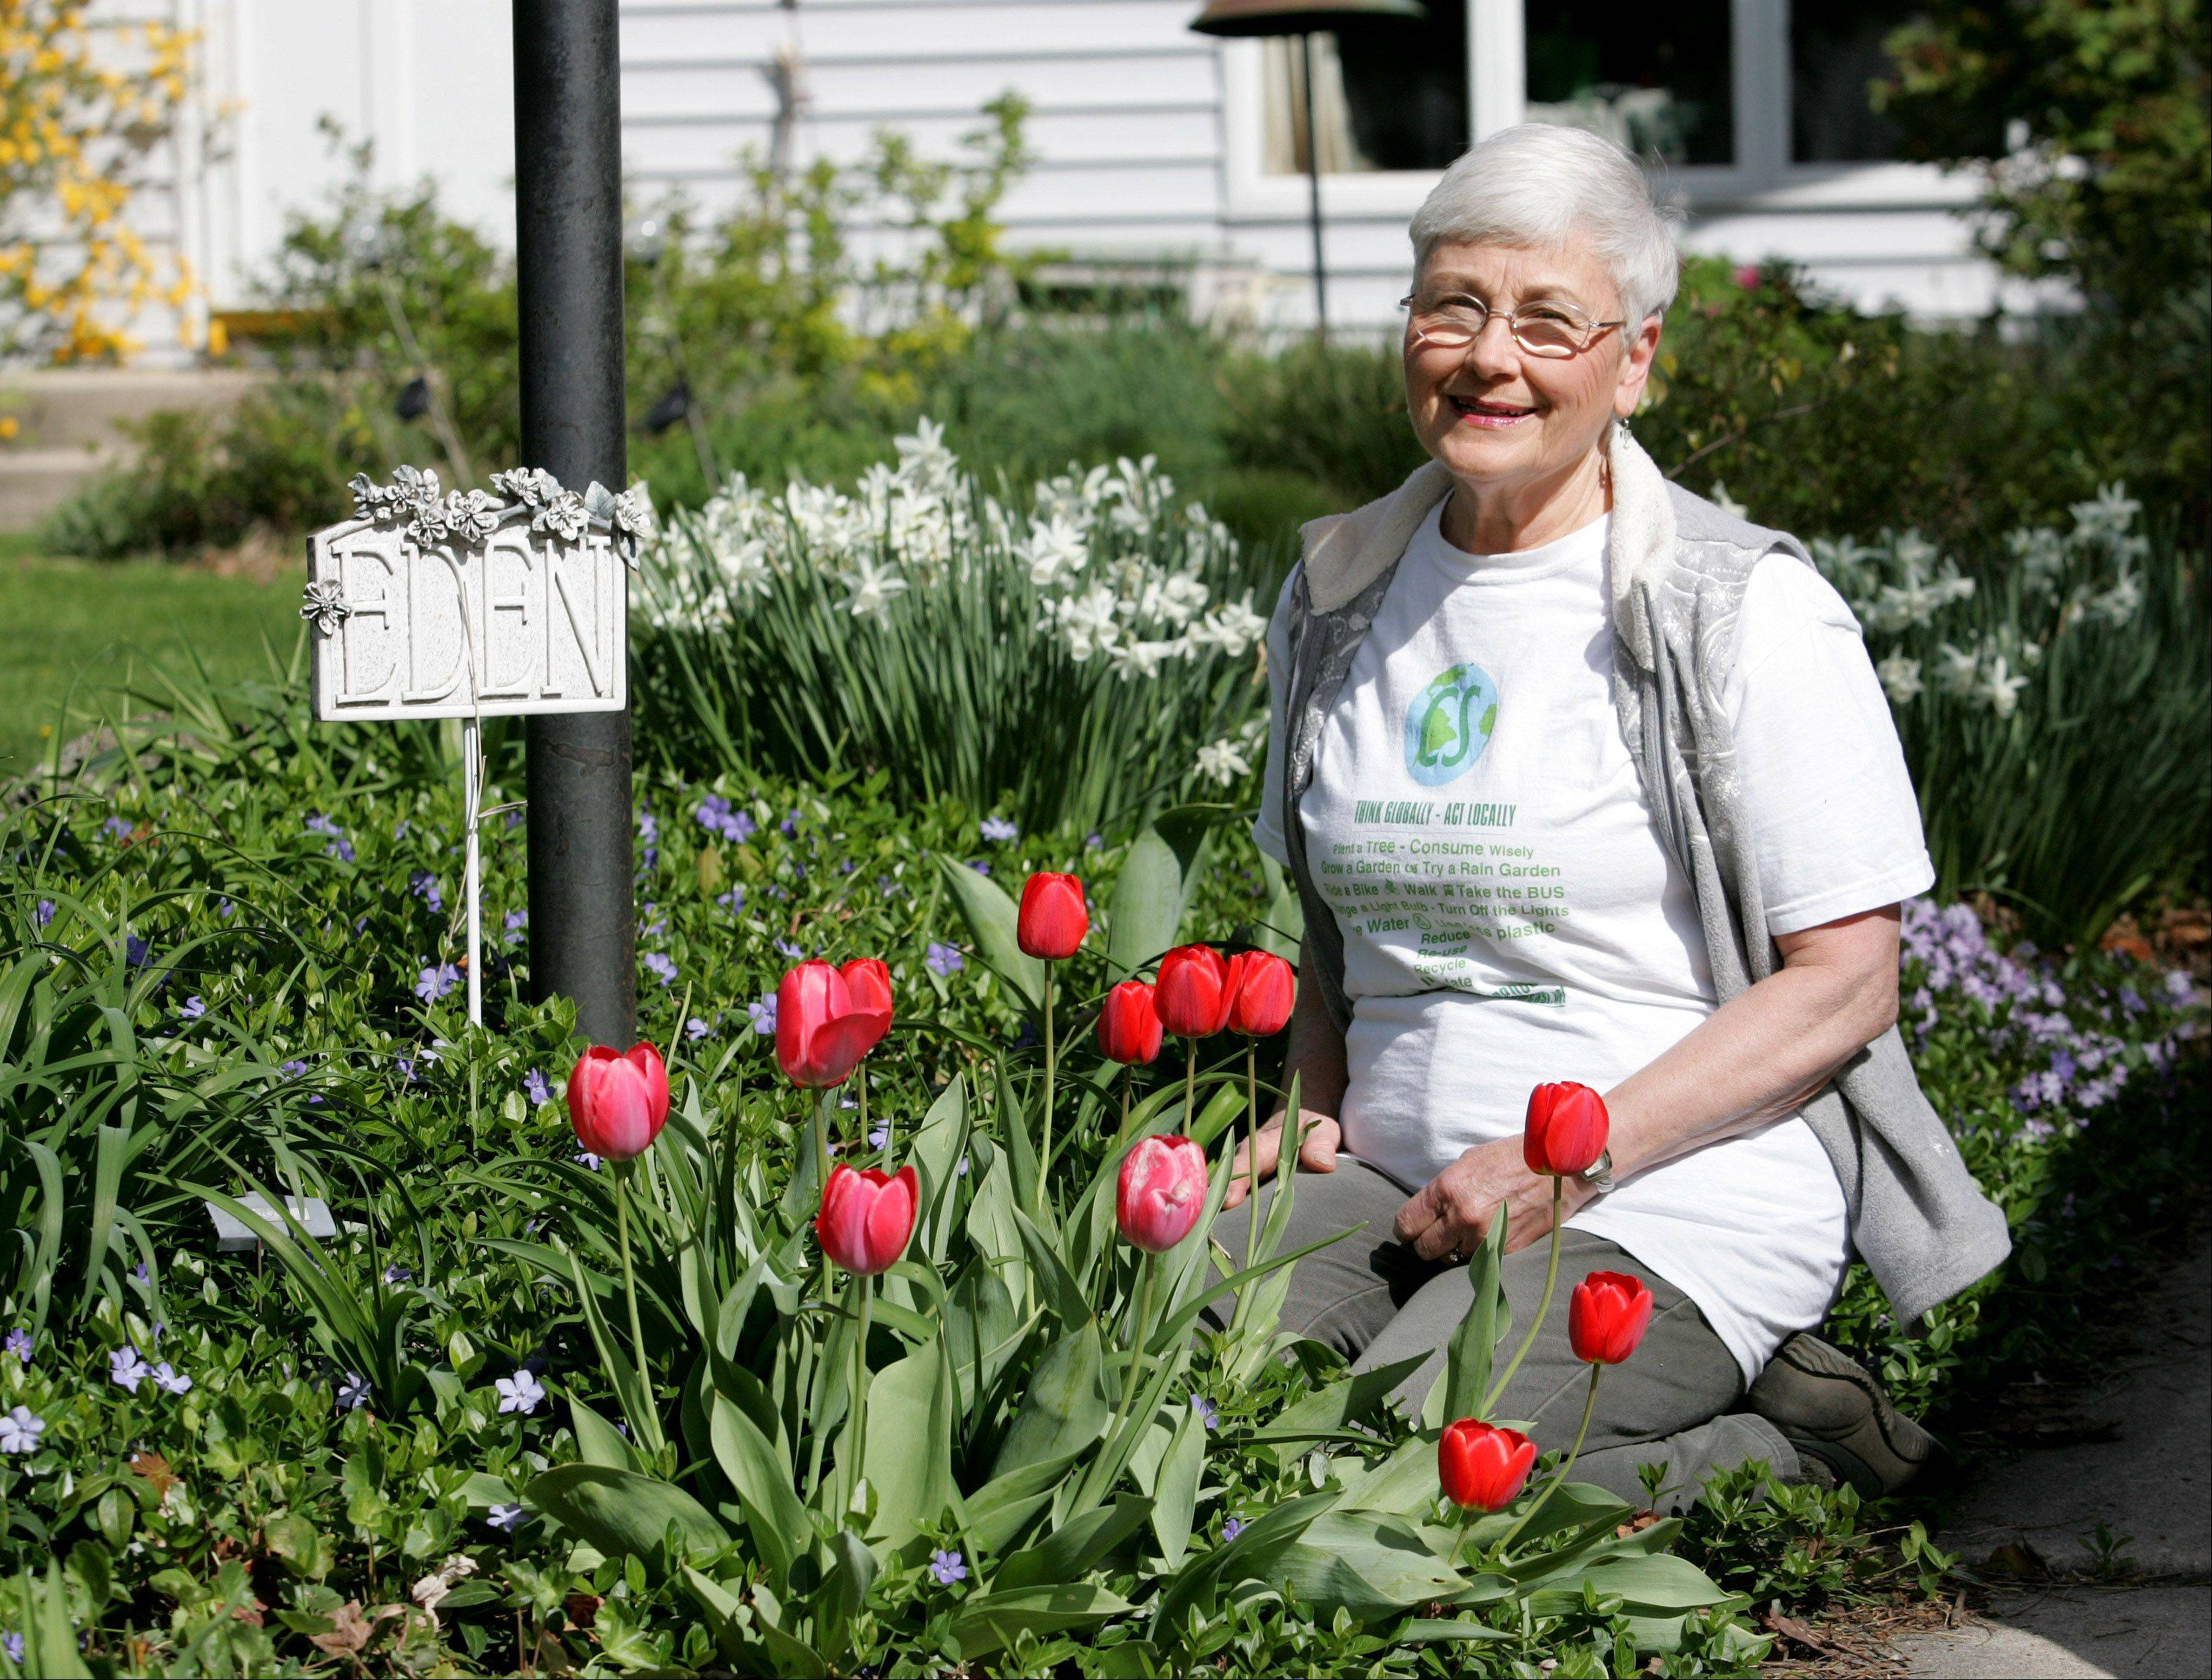 Jan Smith spends a lot of time in her garden outside her Carol Stream home, while also volunteering at a local park that bears her name. She spent 15 years as a part-time gardener for the park district.